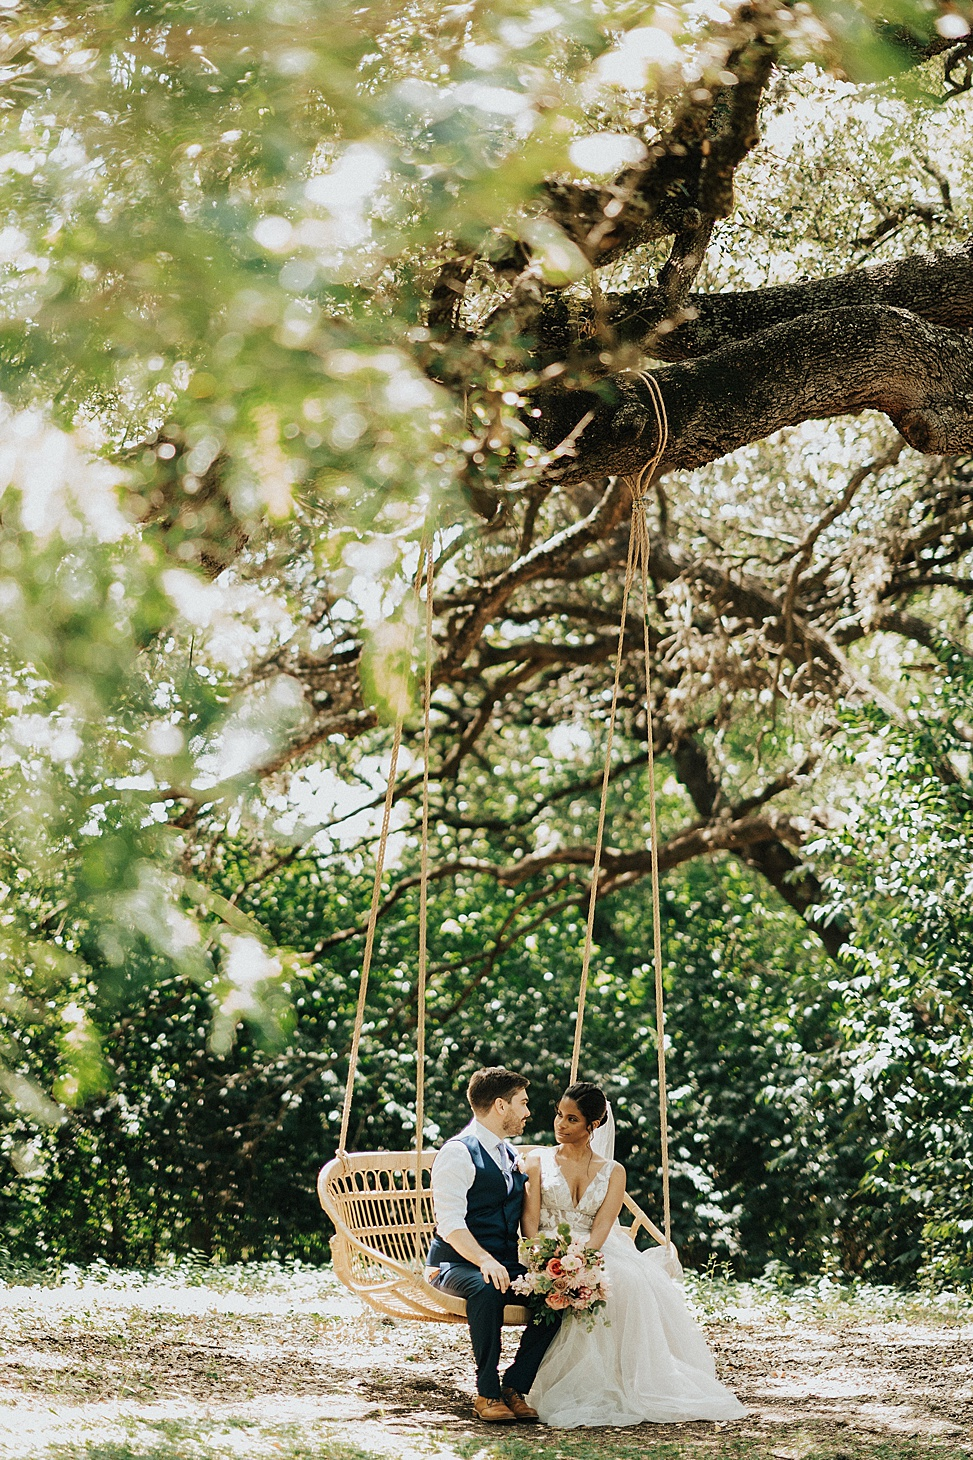 Getting married in a garden is lovely is romantic, especially in spring and summer